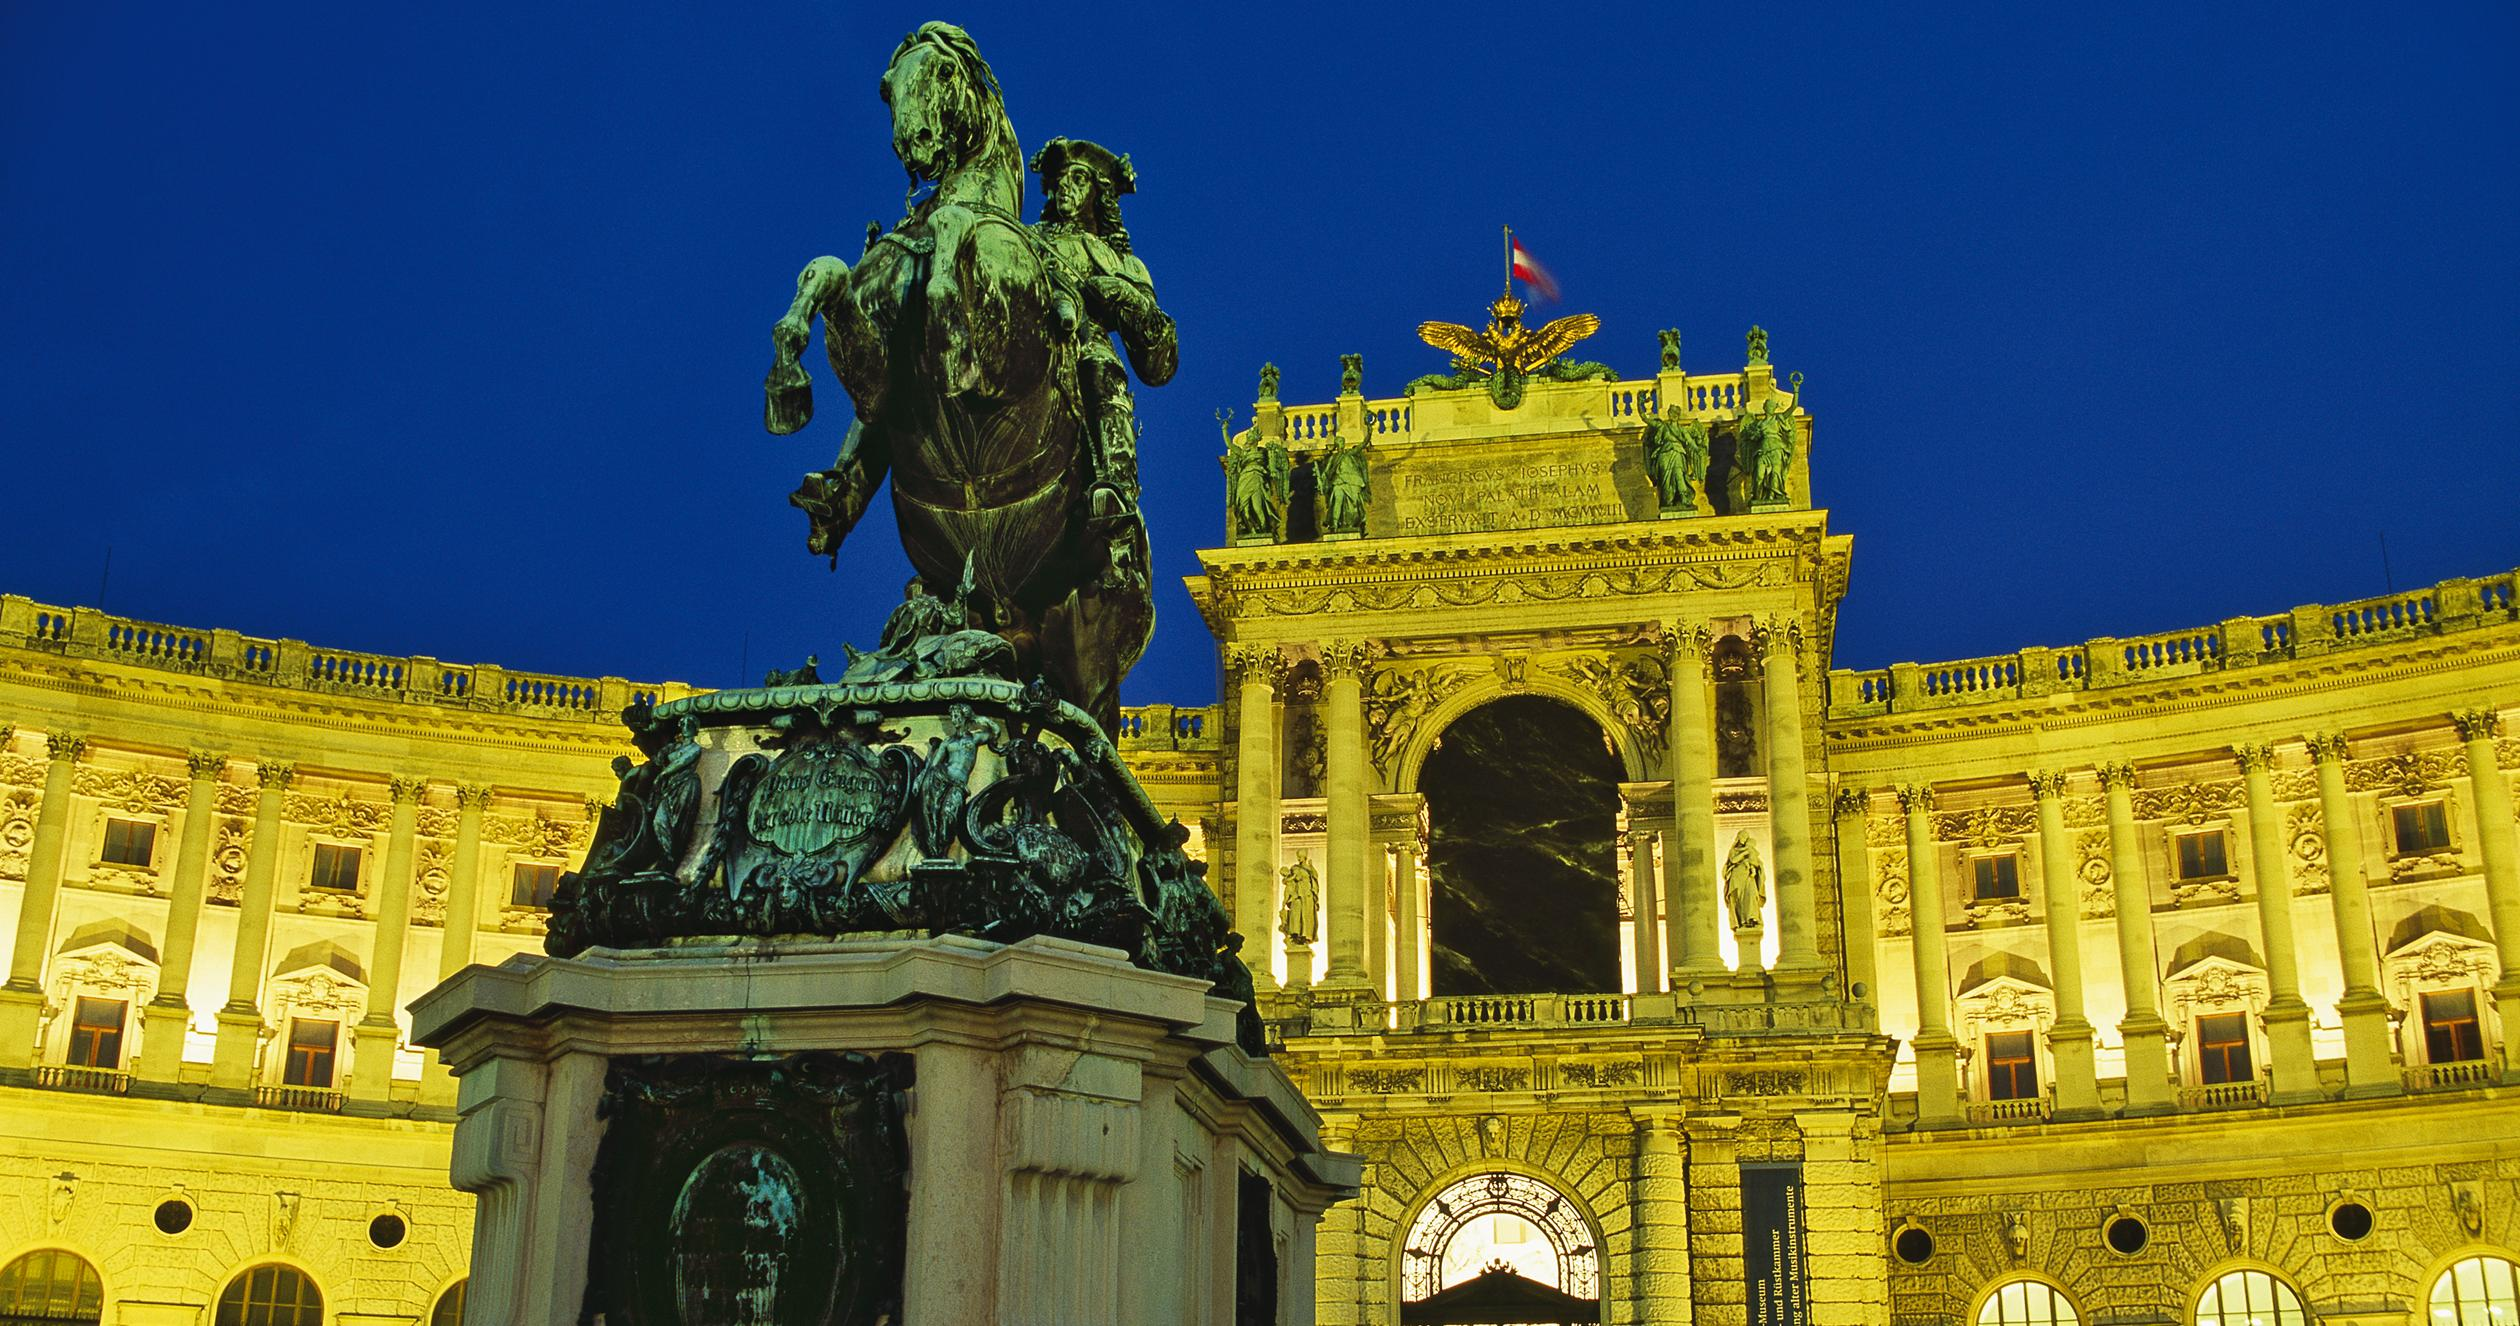 Heldenplatz Picture: Austria Is Now The Flashpoint For Yet Another Clash Of